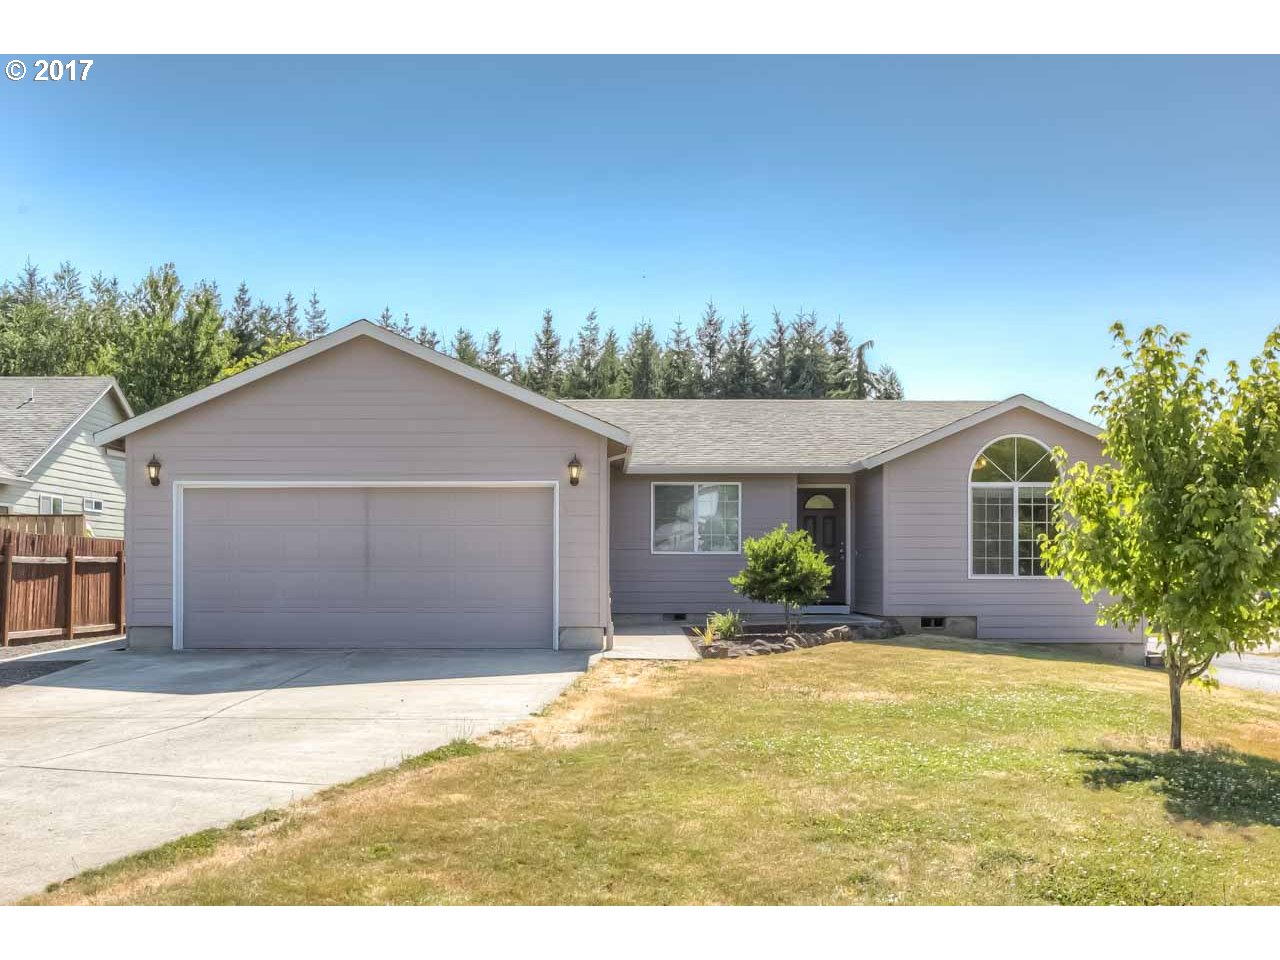 8890 BARBERRY DR, Corvallis, OR 97330